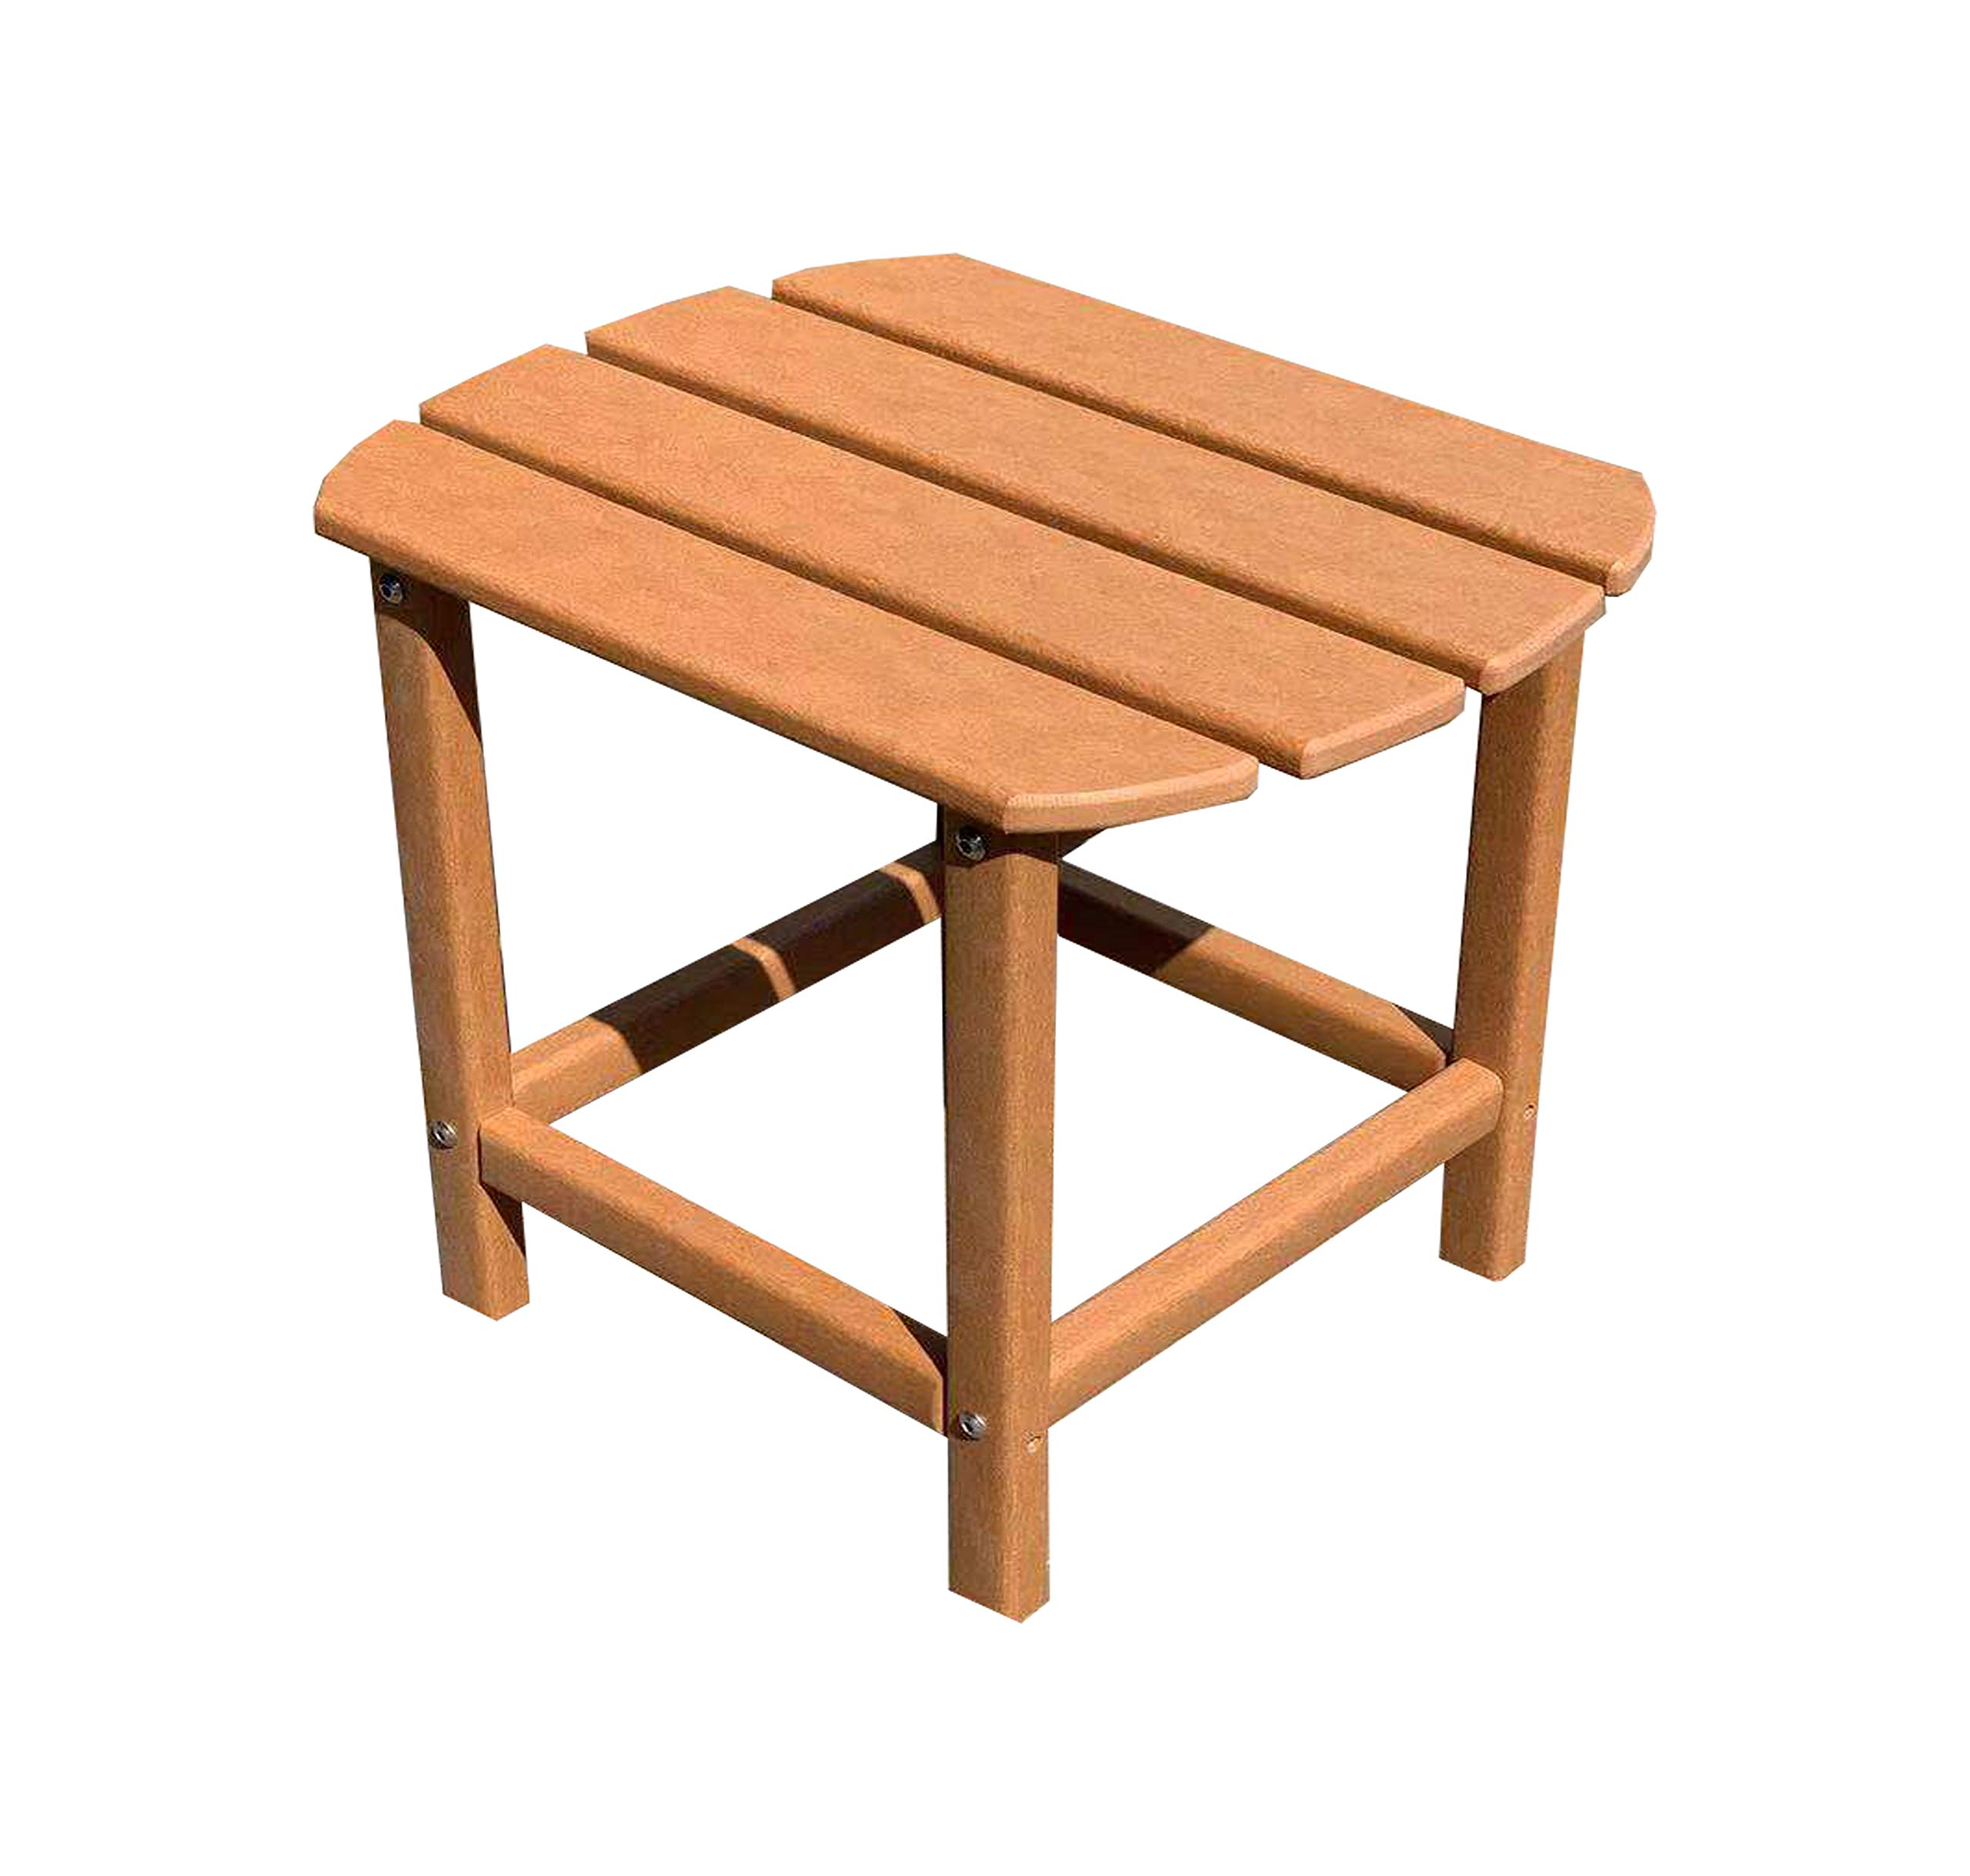 LuXeo LUX-1520-TEK-ST Corona Recycled Plastic Side Table, Teak by LuXeo